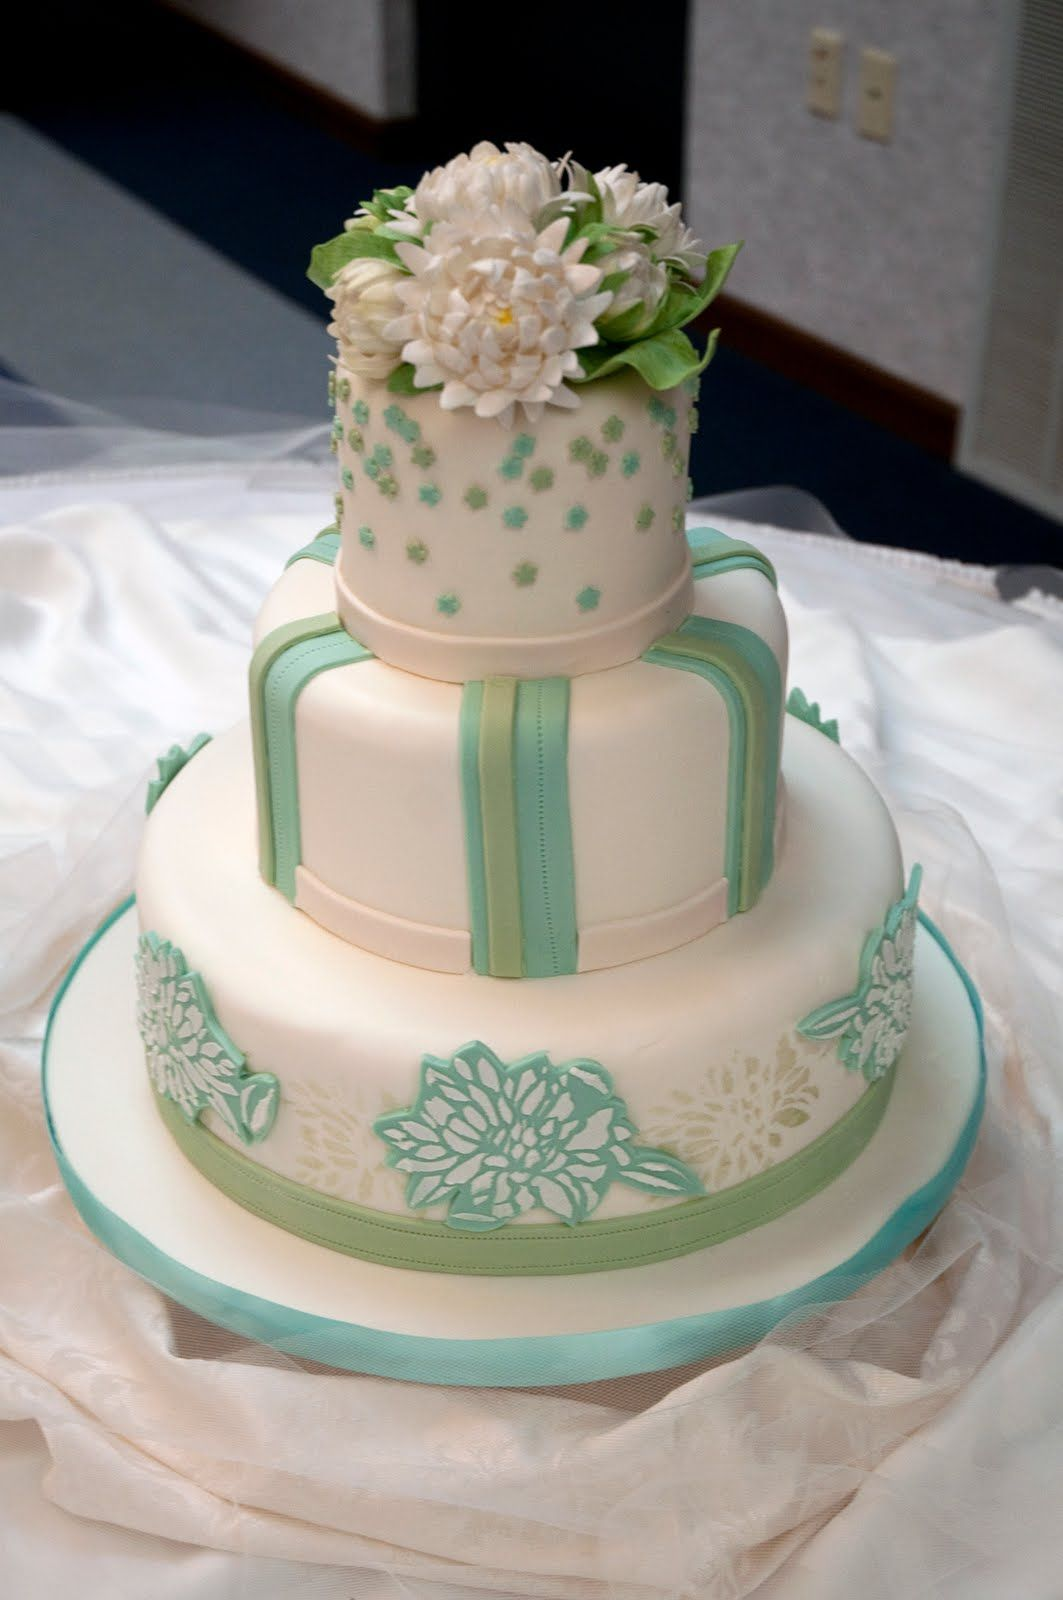 Love the size and the little top tier-would be great in orange